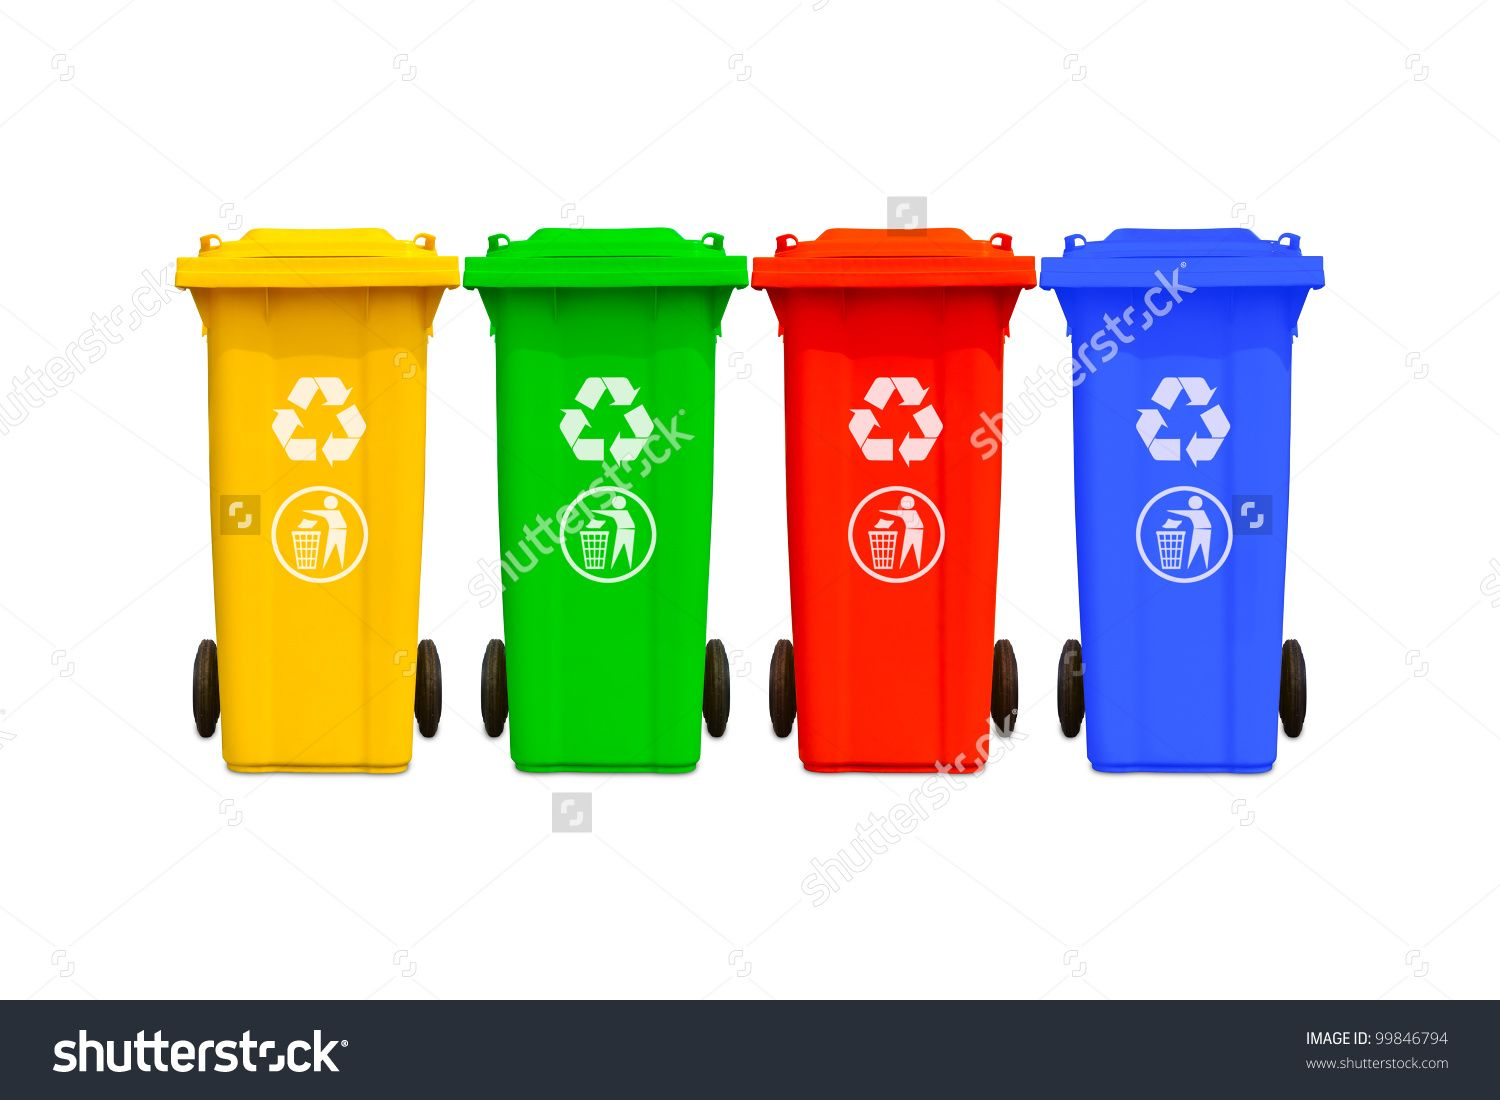 Colored Kitchen Trash Cans Pin By Eco Recycling On Trash Bins Pinterest Trash Bins